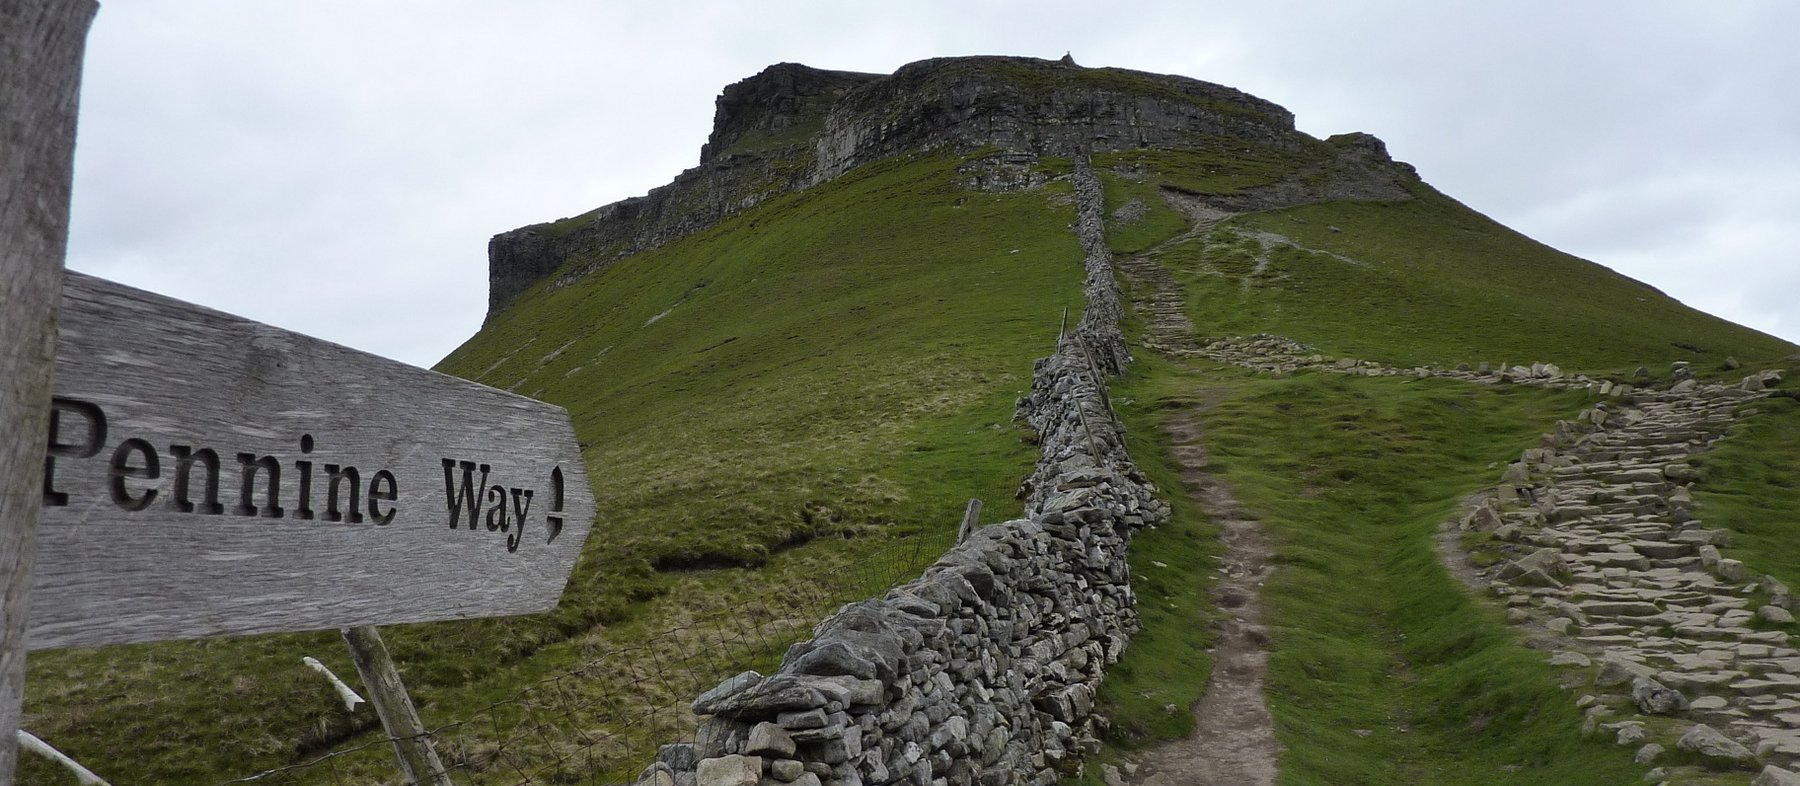 The ascent of Pen-y-ghent is steep, but short